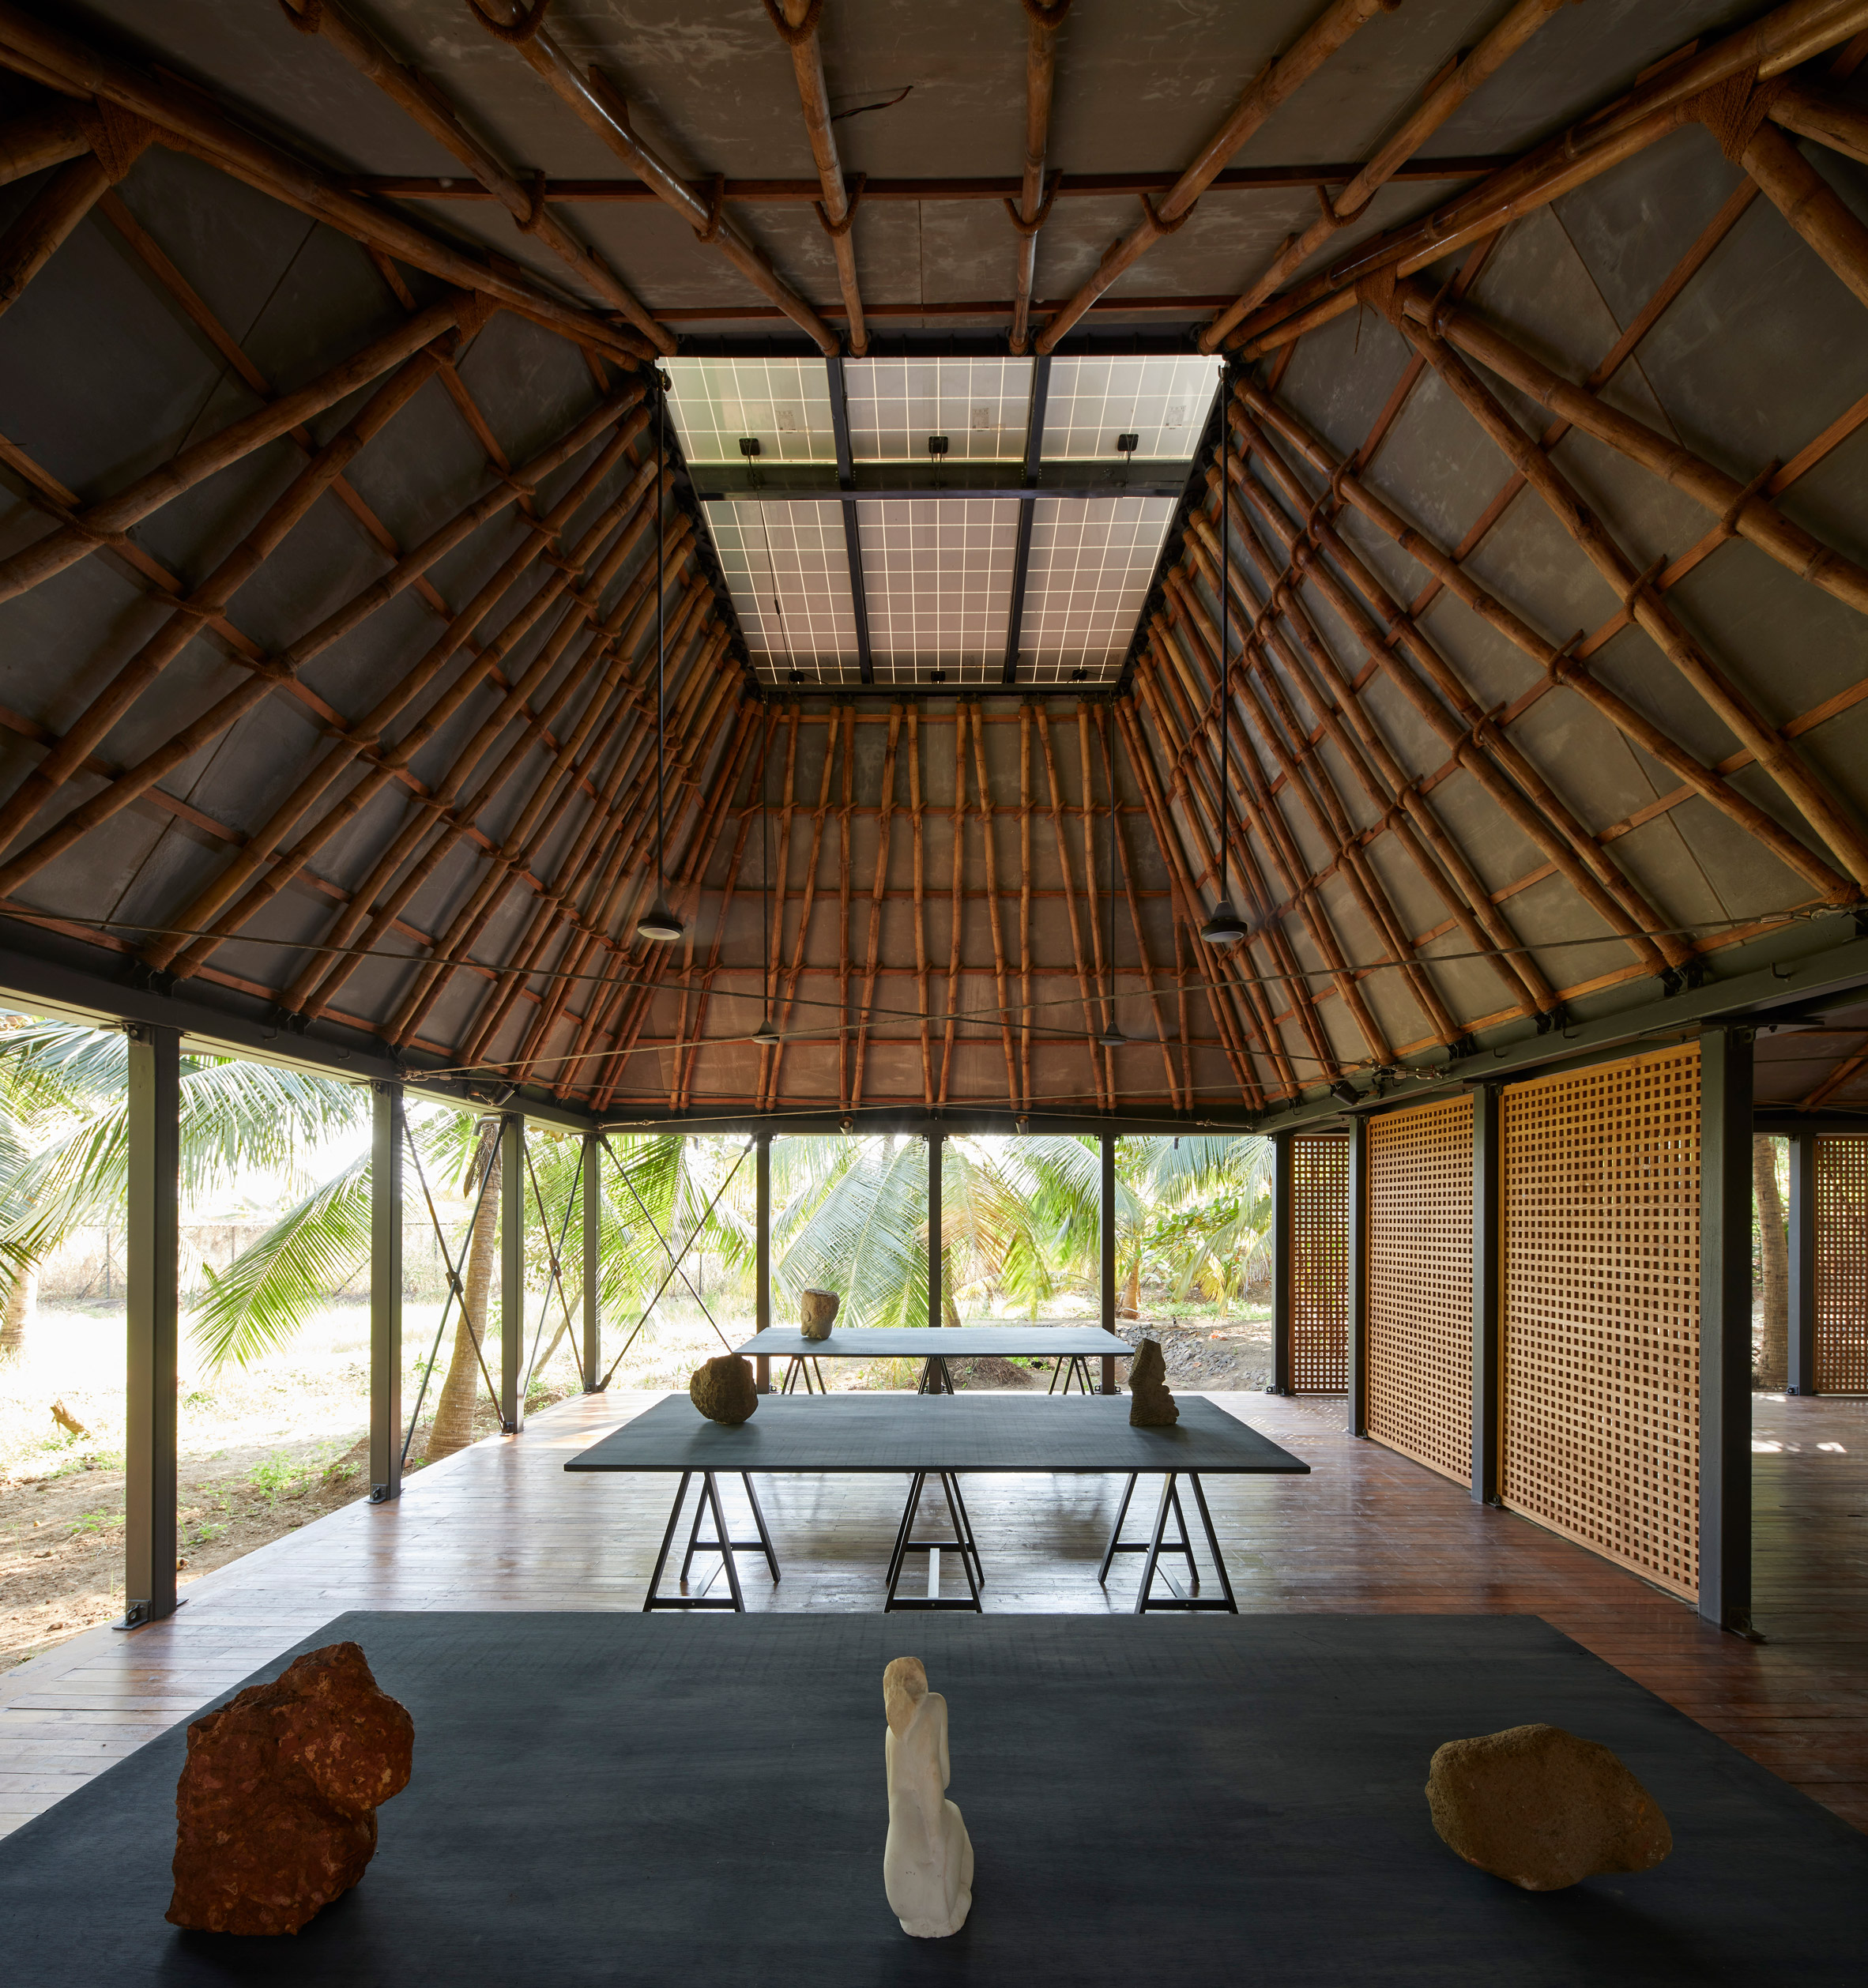 A pavilion with a bamboo structure